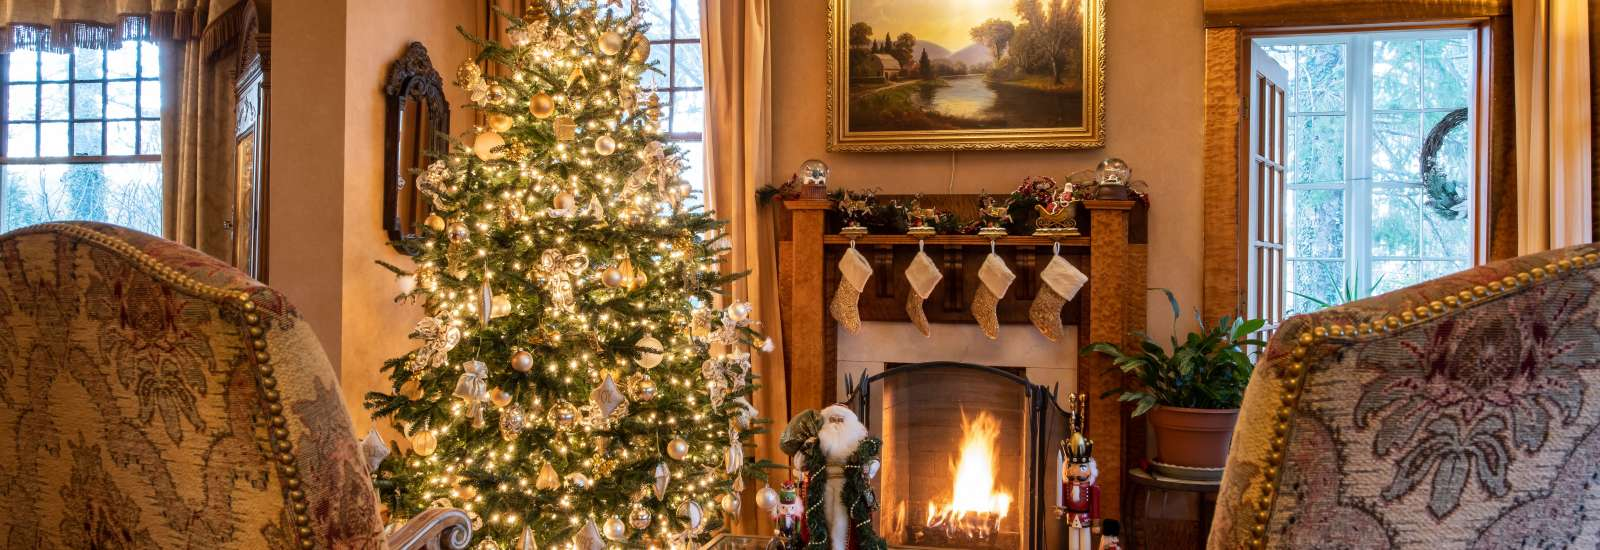 Beautiful and classic holiday decorations at Cumberland Falls B&B in Asheville, NC